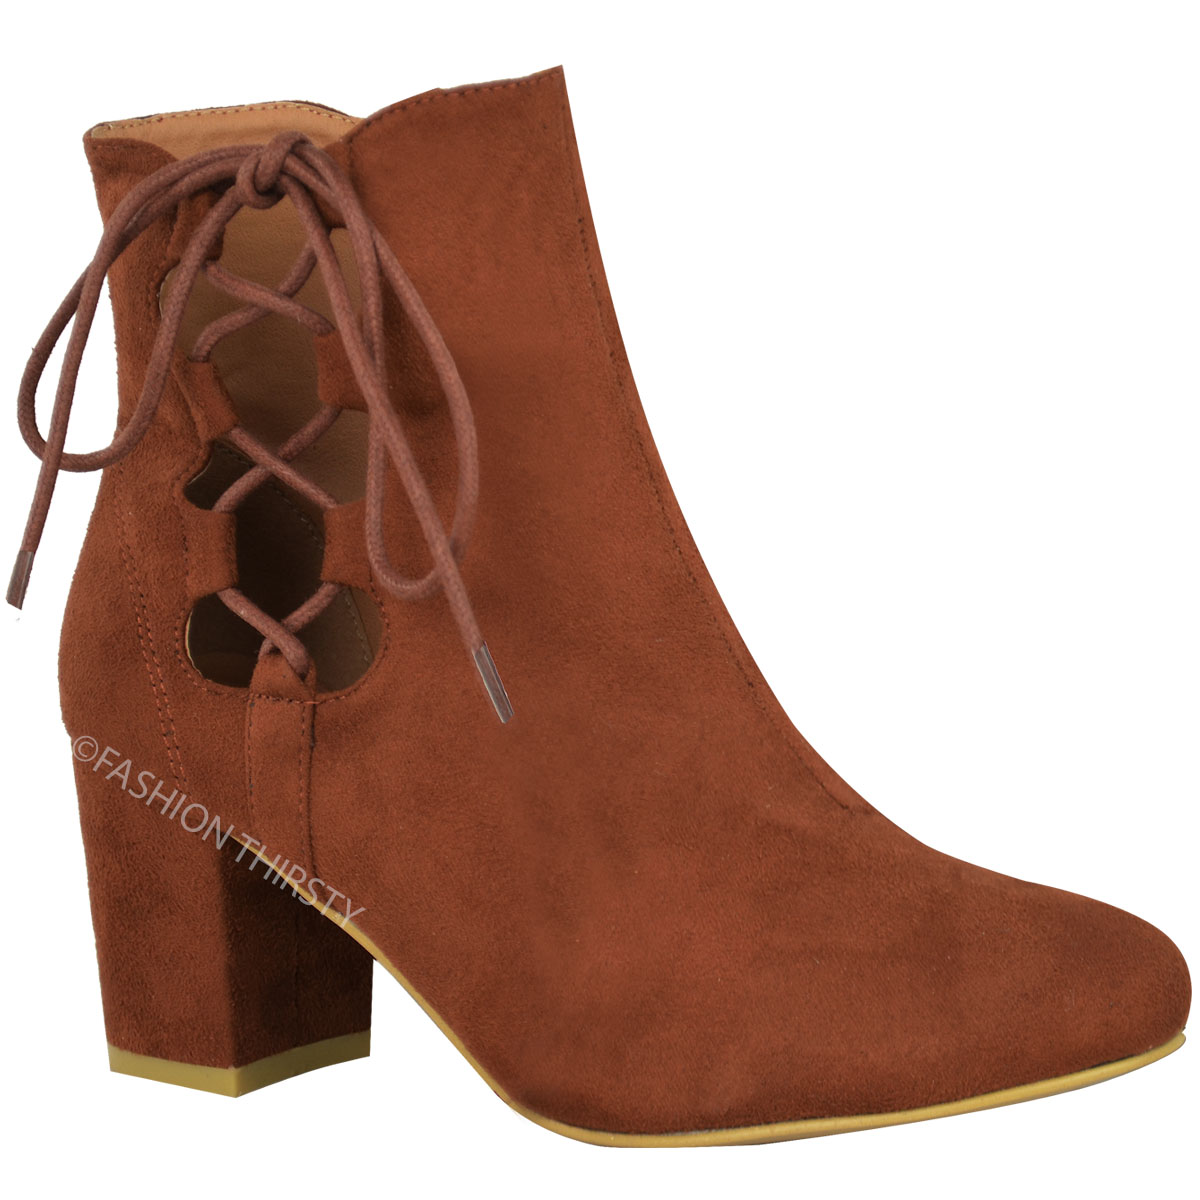 thumbnail 8 - WOMENS-LADIES-LOW-BLOCK-HEEL-CHELSEA-ANKLE-BOOTS-CUT-OUT-LACE-UP-SHOES-NEW-SIZE